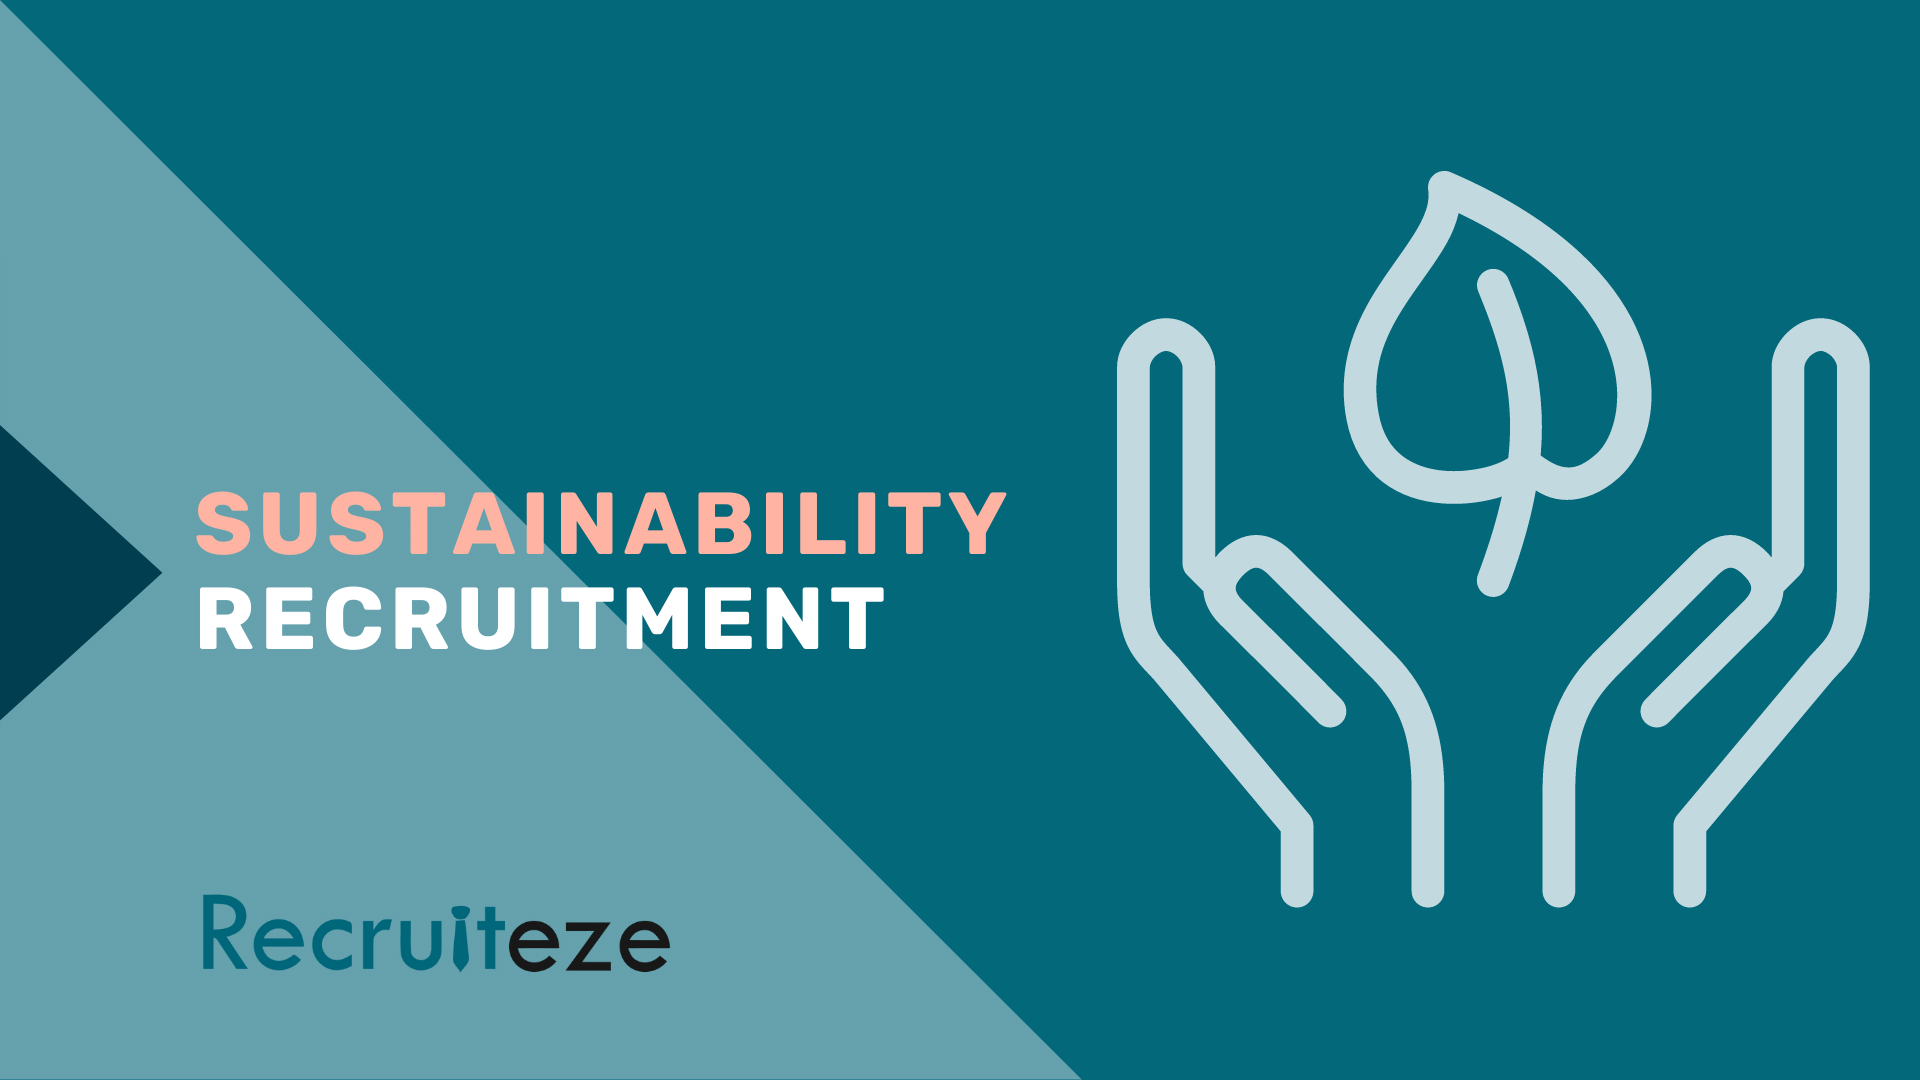 What is Sustainability Recruitment And Why Does it Matter?